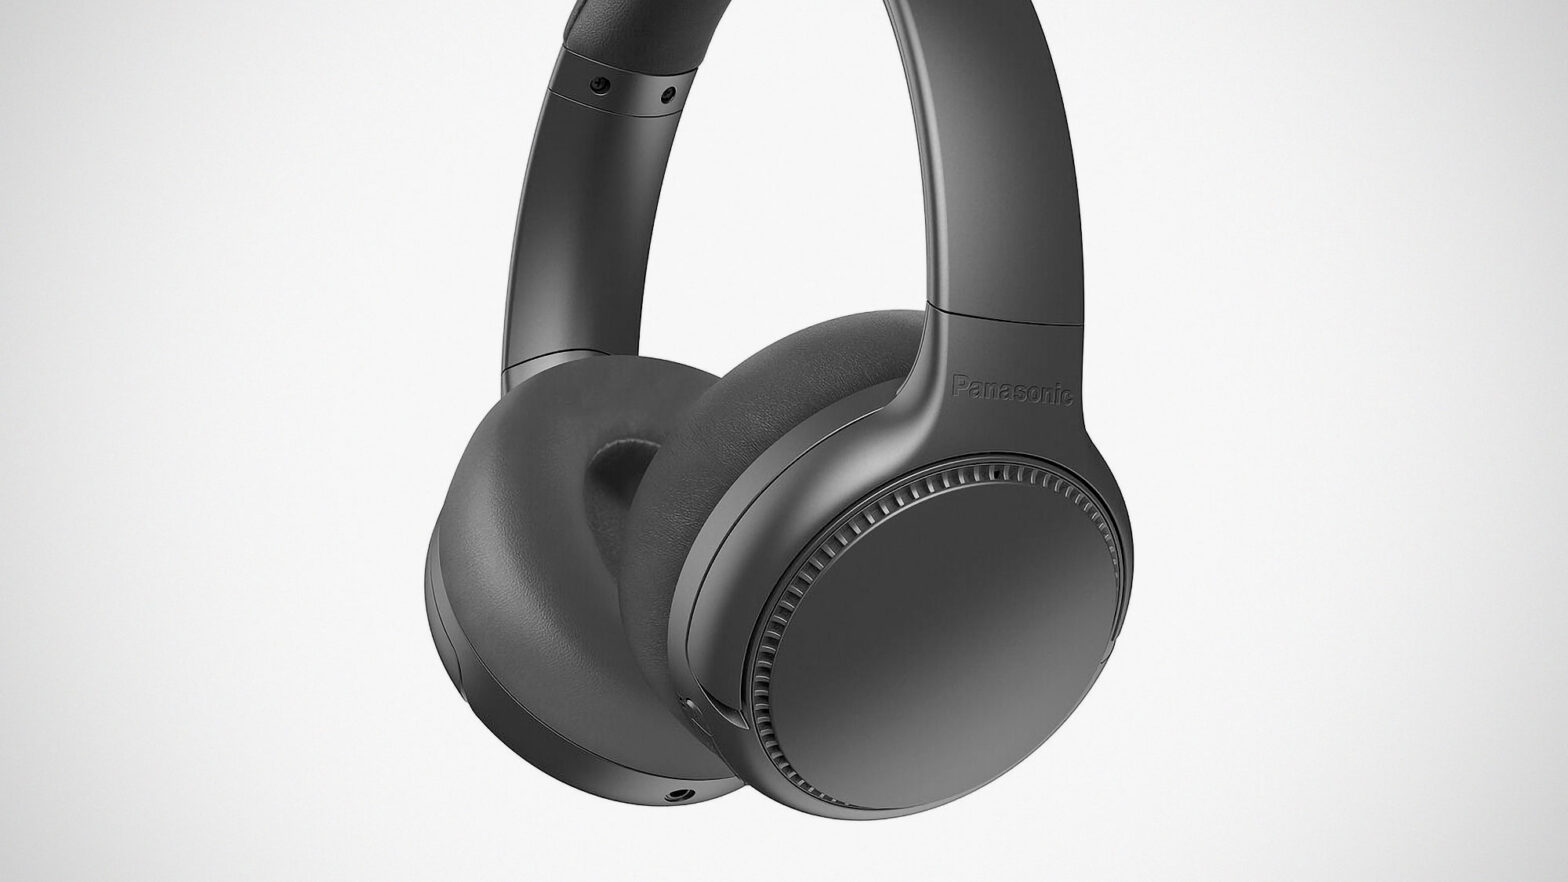 Panasonic RB-M700B/M500B Wireless Headphones